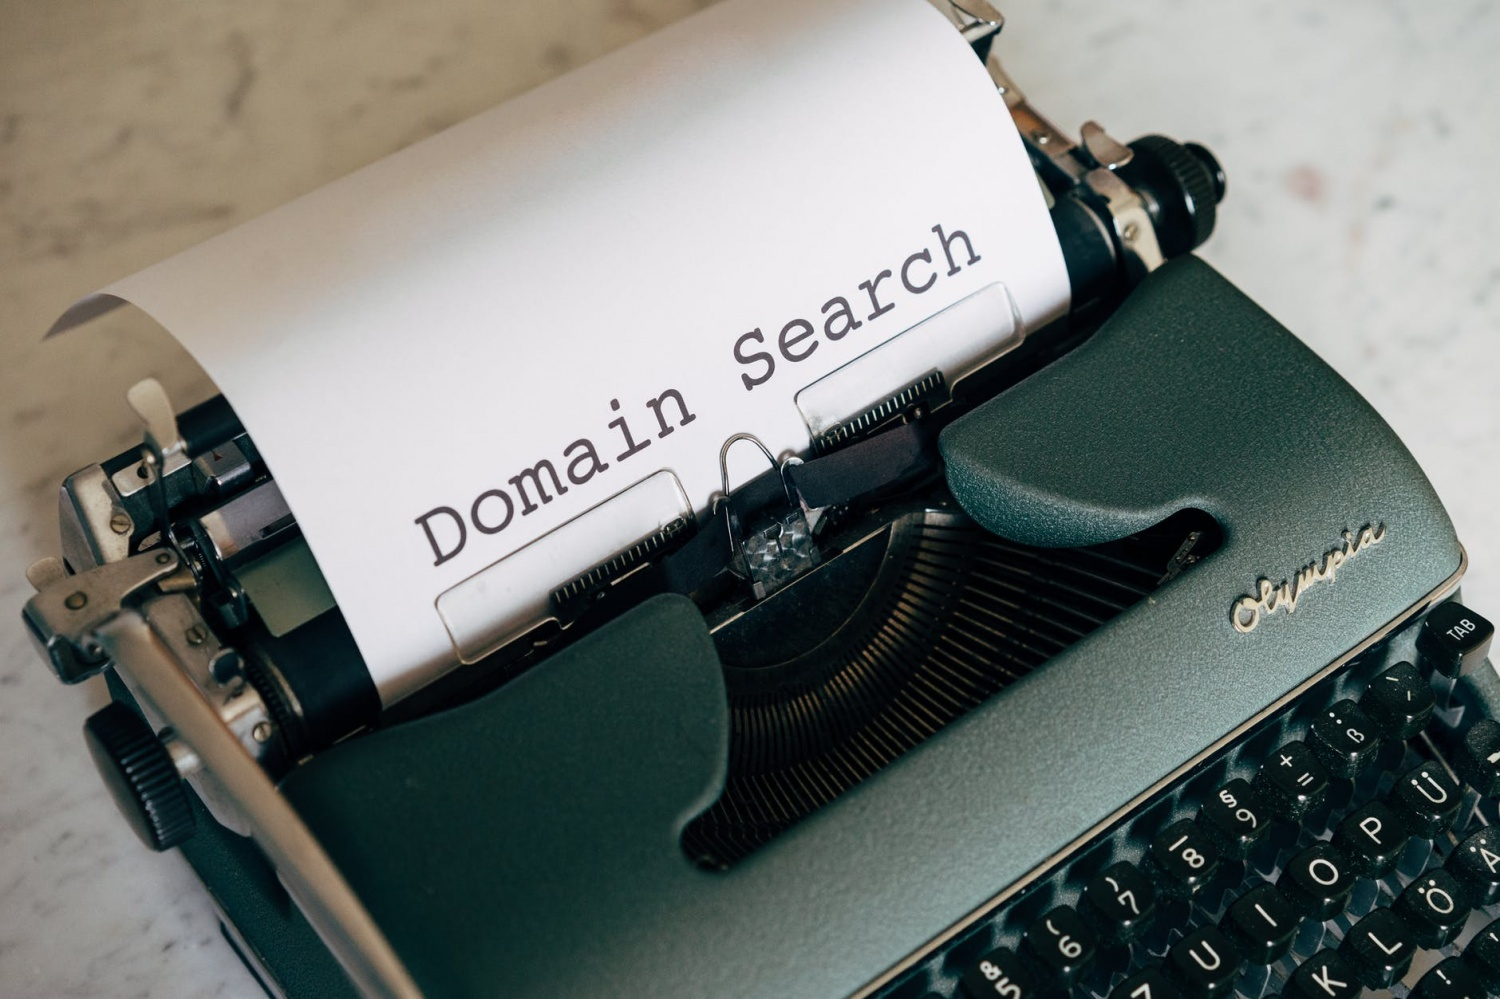 How to Find a Domain That Has Not Been Registered